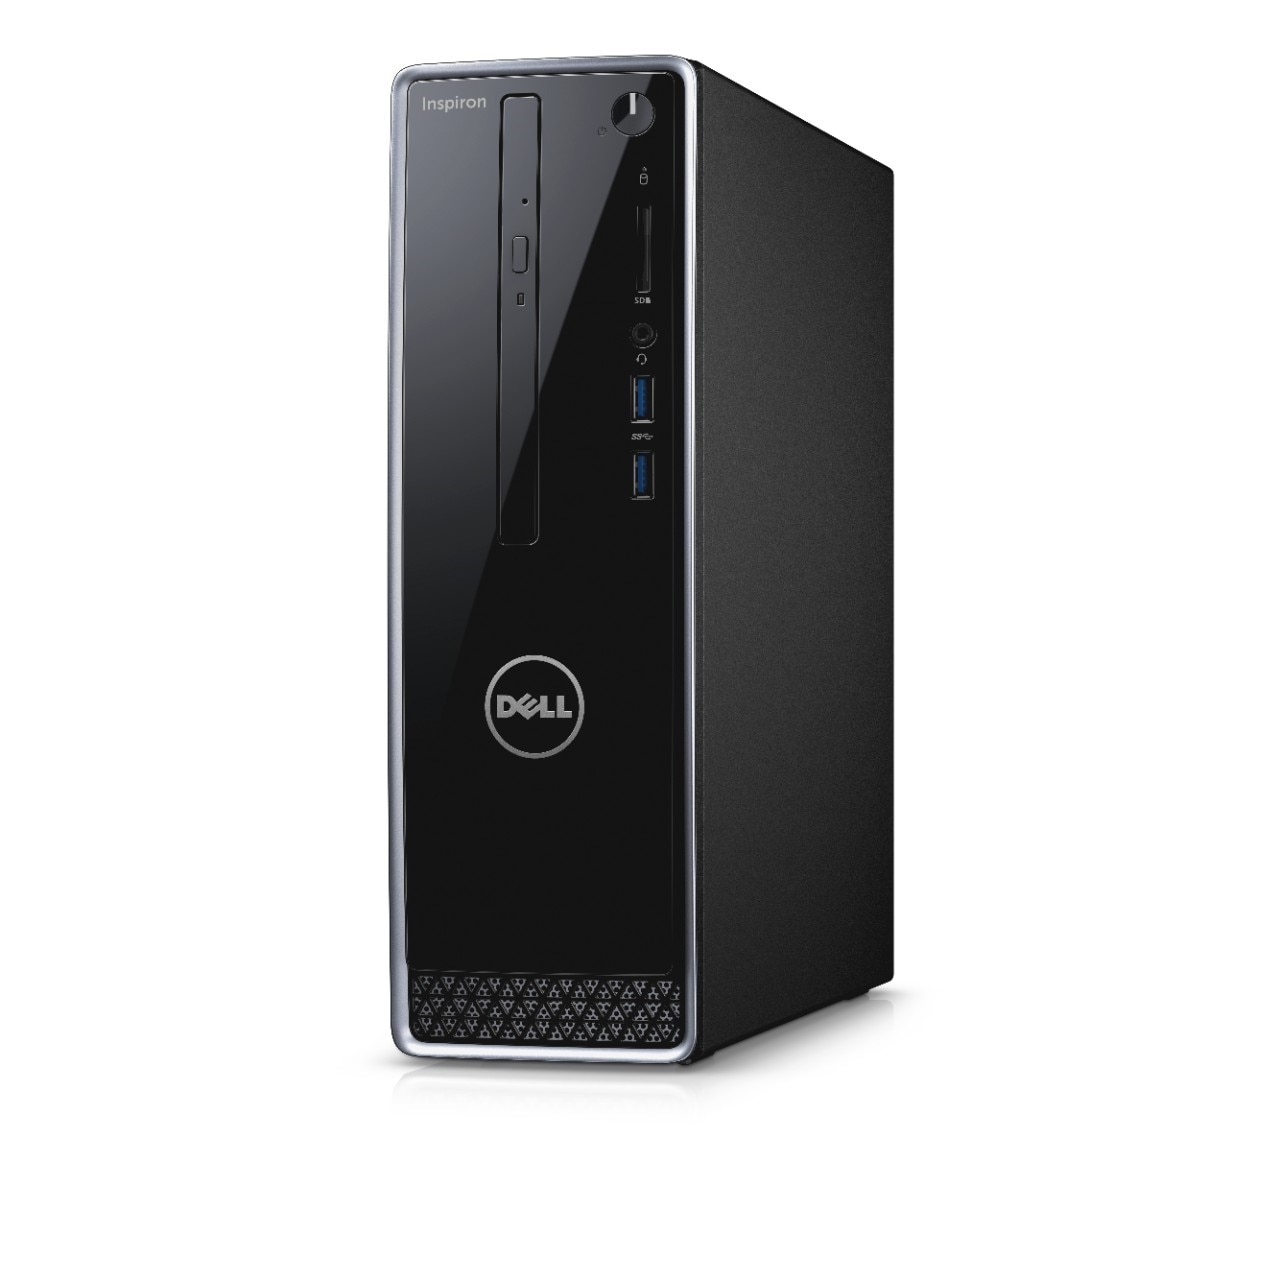 Inspiron 3268 Small Desktop